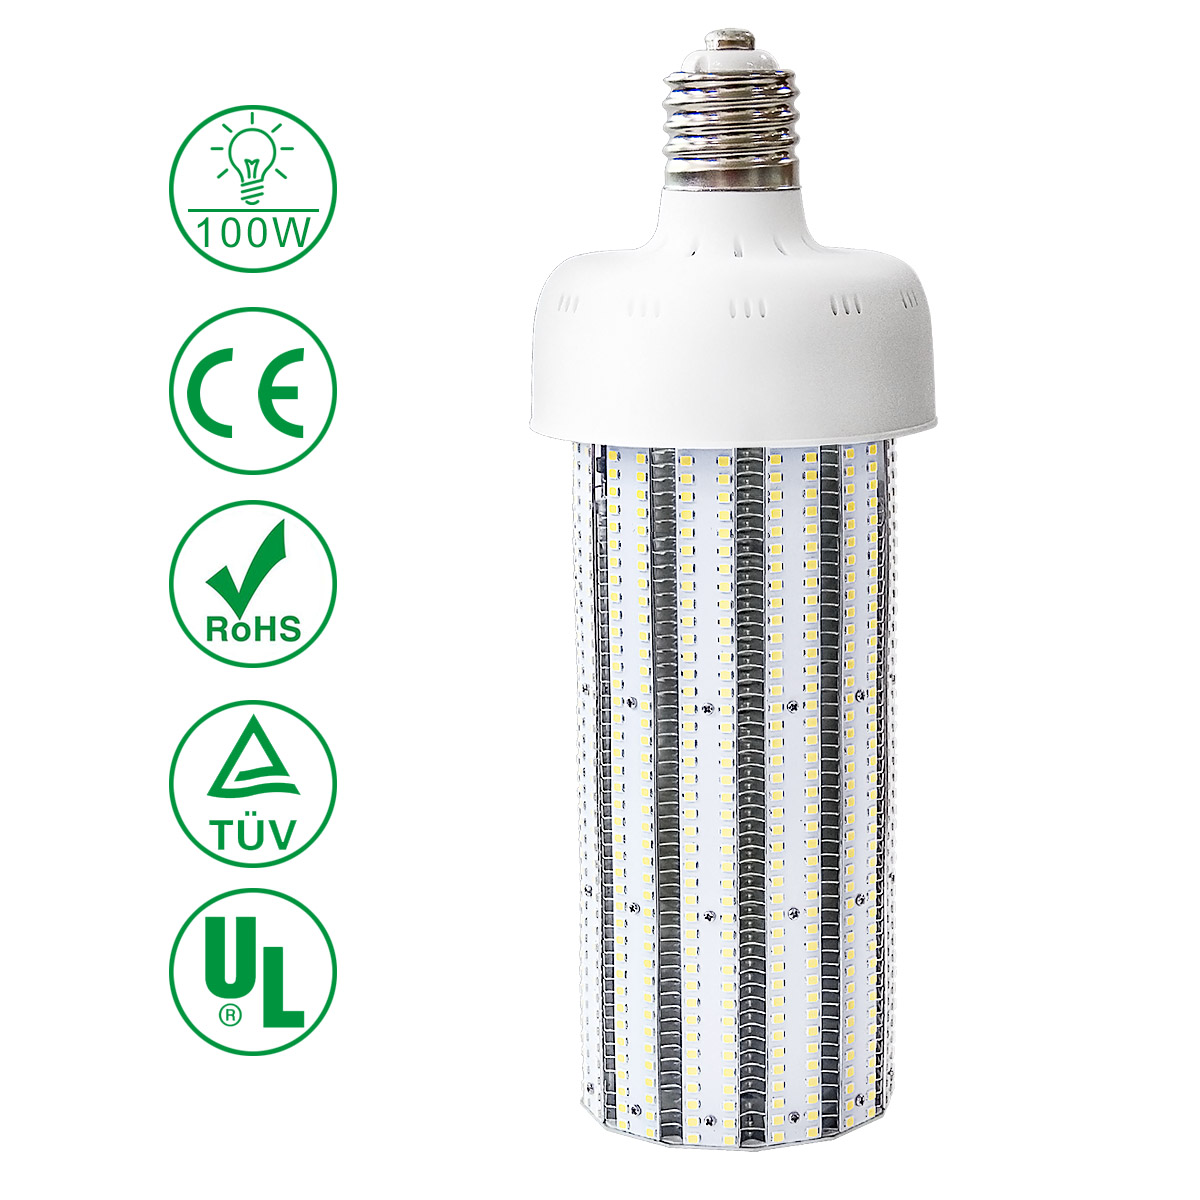 KAWELL 100W LED Corn Light Bulb, E39 Large Mogul Base Street/Area Light, for Fixtures HID/HPS/Metal Halide or CFL, 12000 lumen 6500K (Daylight) 360°Flood Light UL Listed/TUV-Qualified/DLC Certified